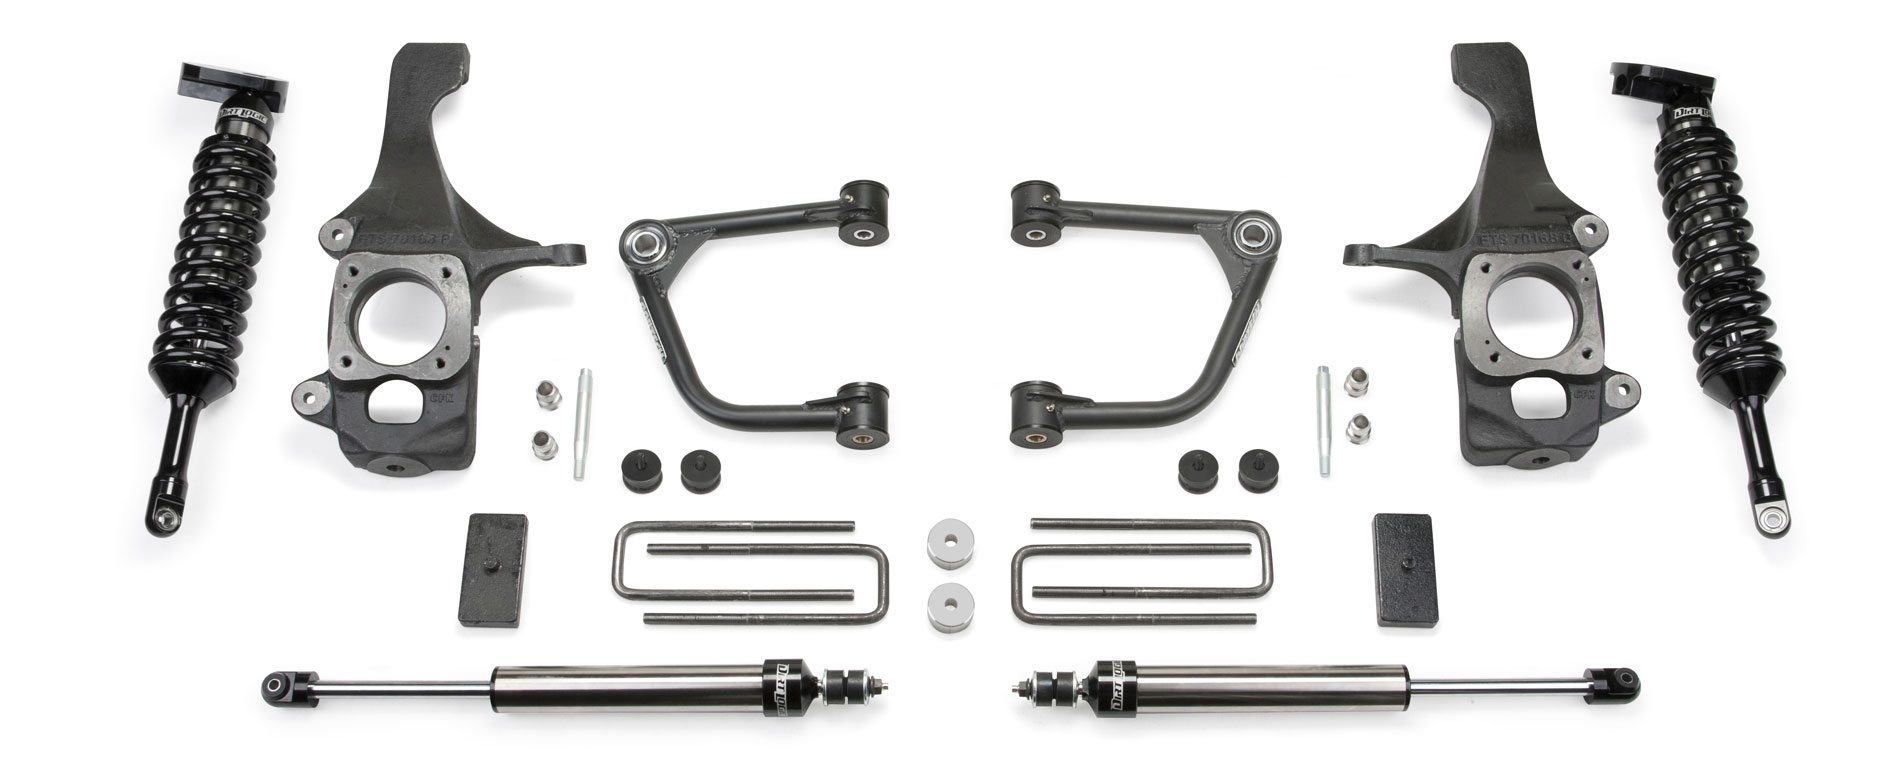 Fabtech 4 Lift Kit With Shocks For Toyota Tundra